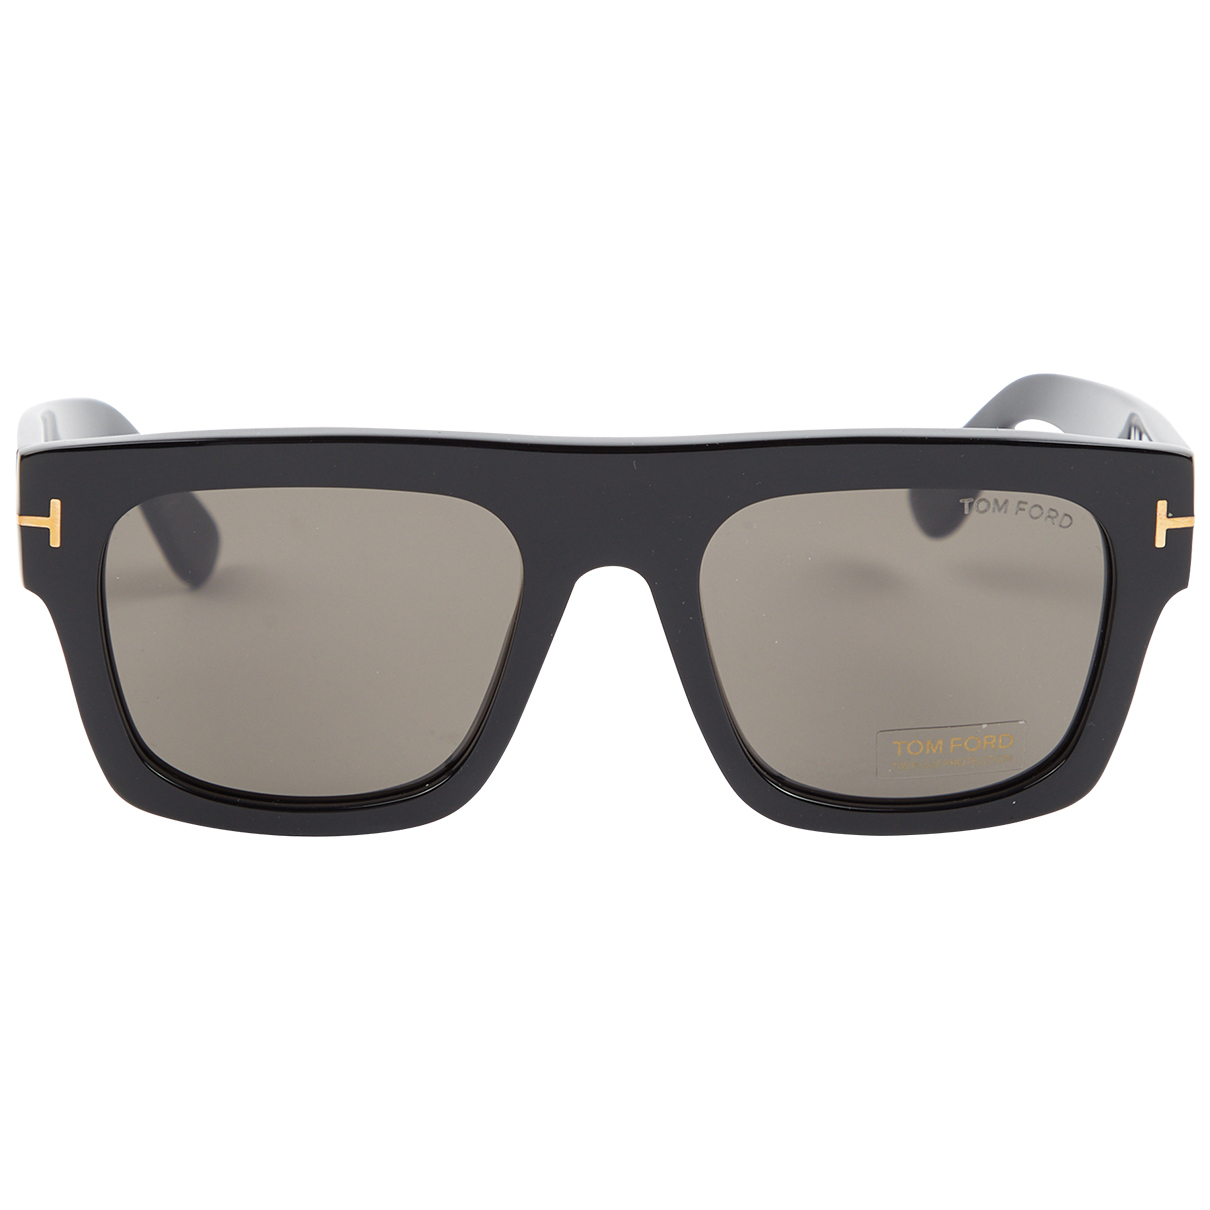 Tom Ford \N Black Sunglasses for Women \N